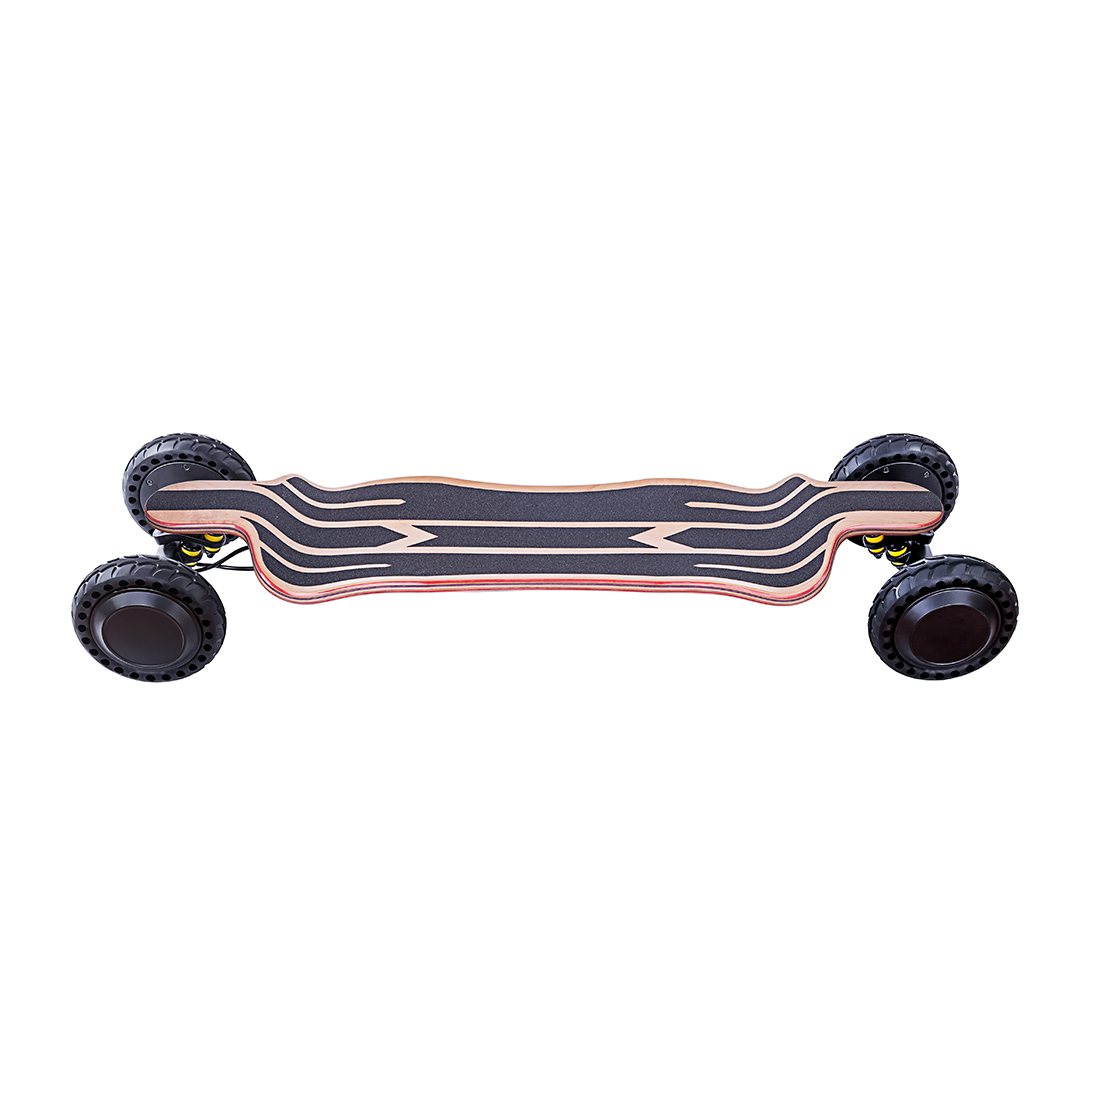 Seeker AT s1 vesc6 based 21700 12s3p battery 190mm rubber wheel  all-terrain electric skateboard